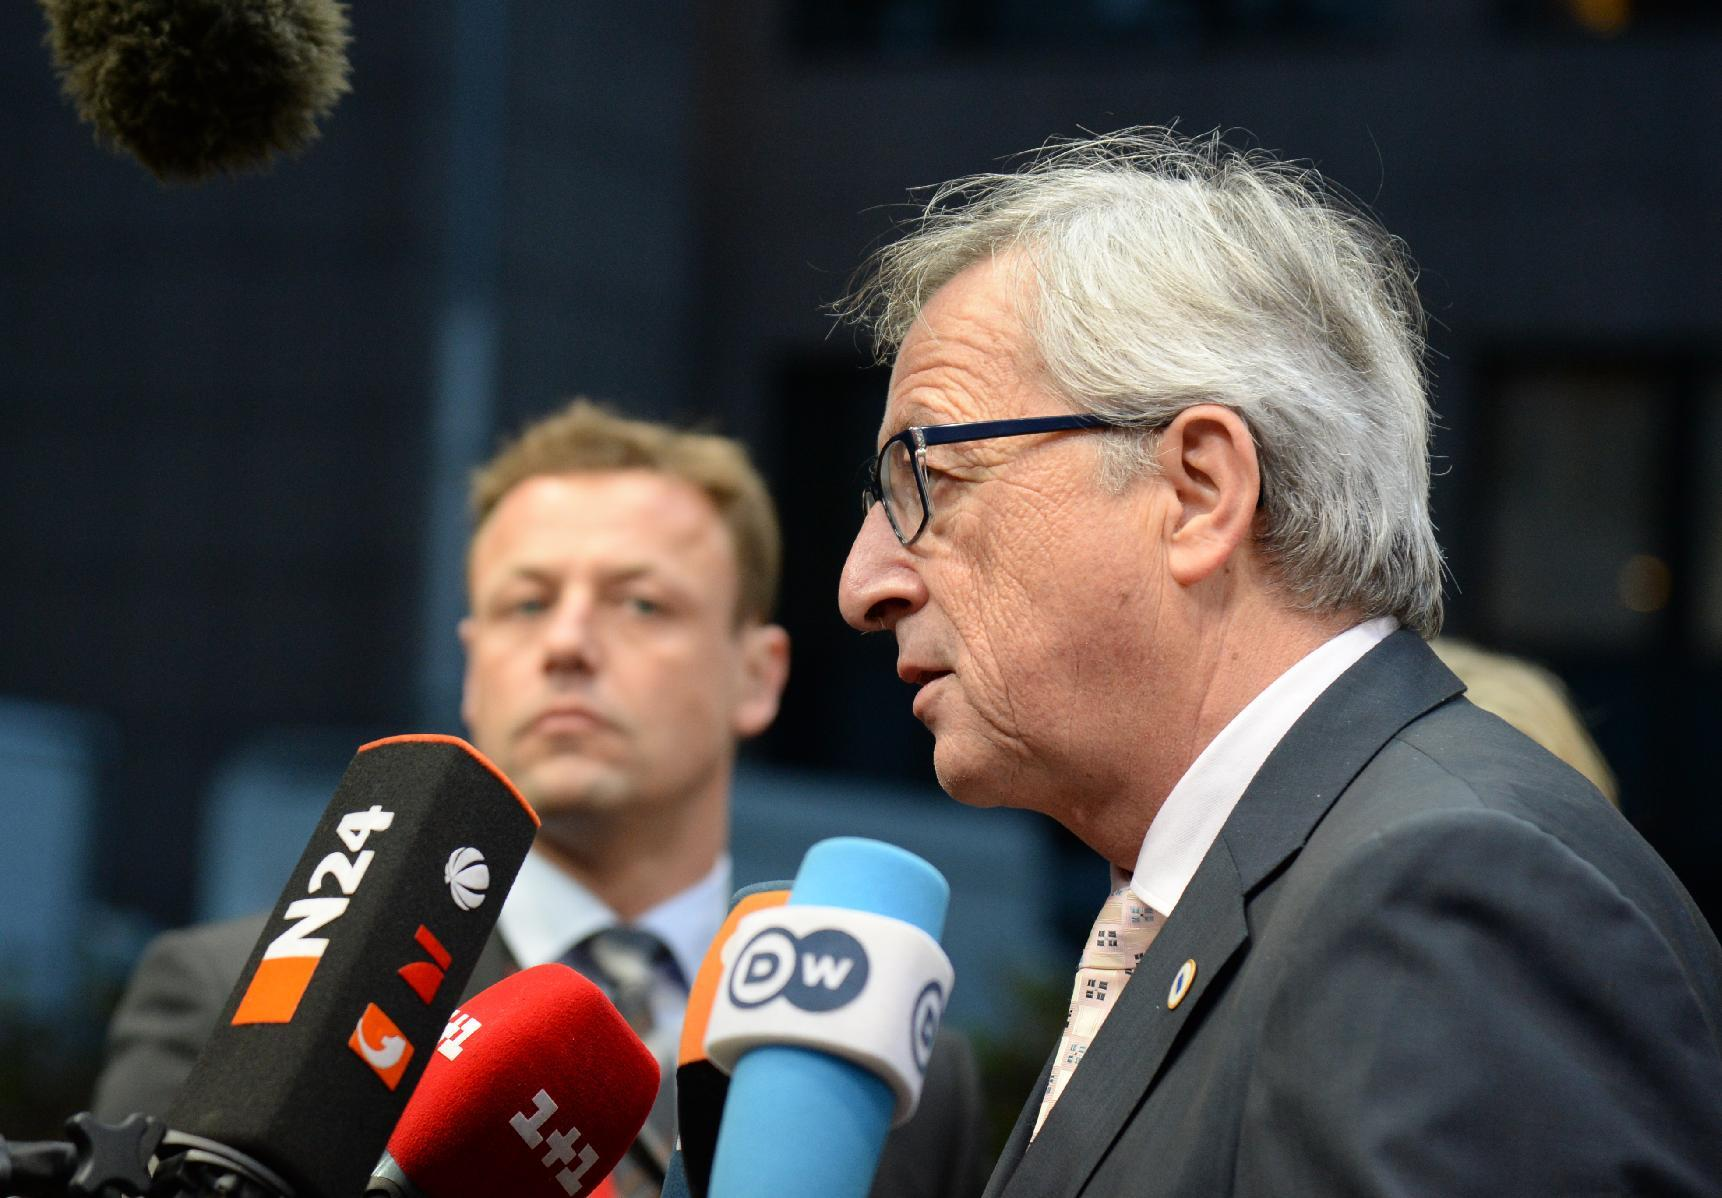 EU leaders baulk at money for Juncker investment plan